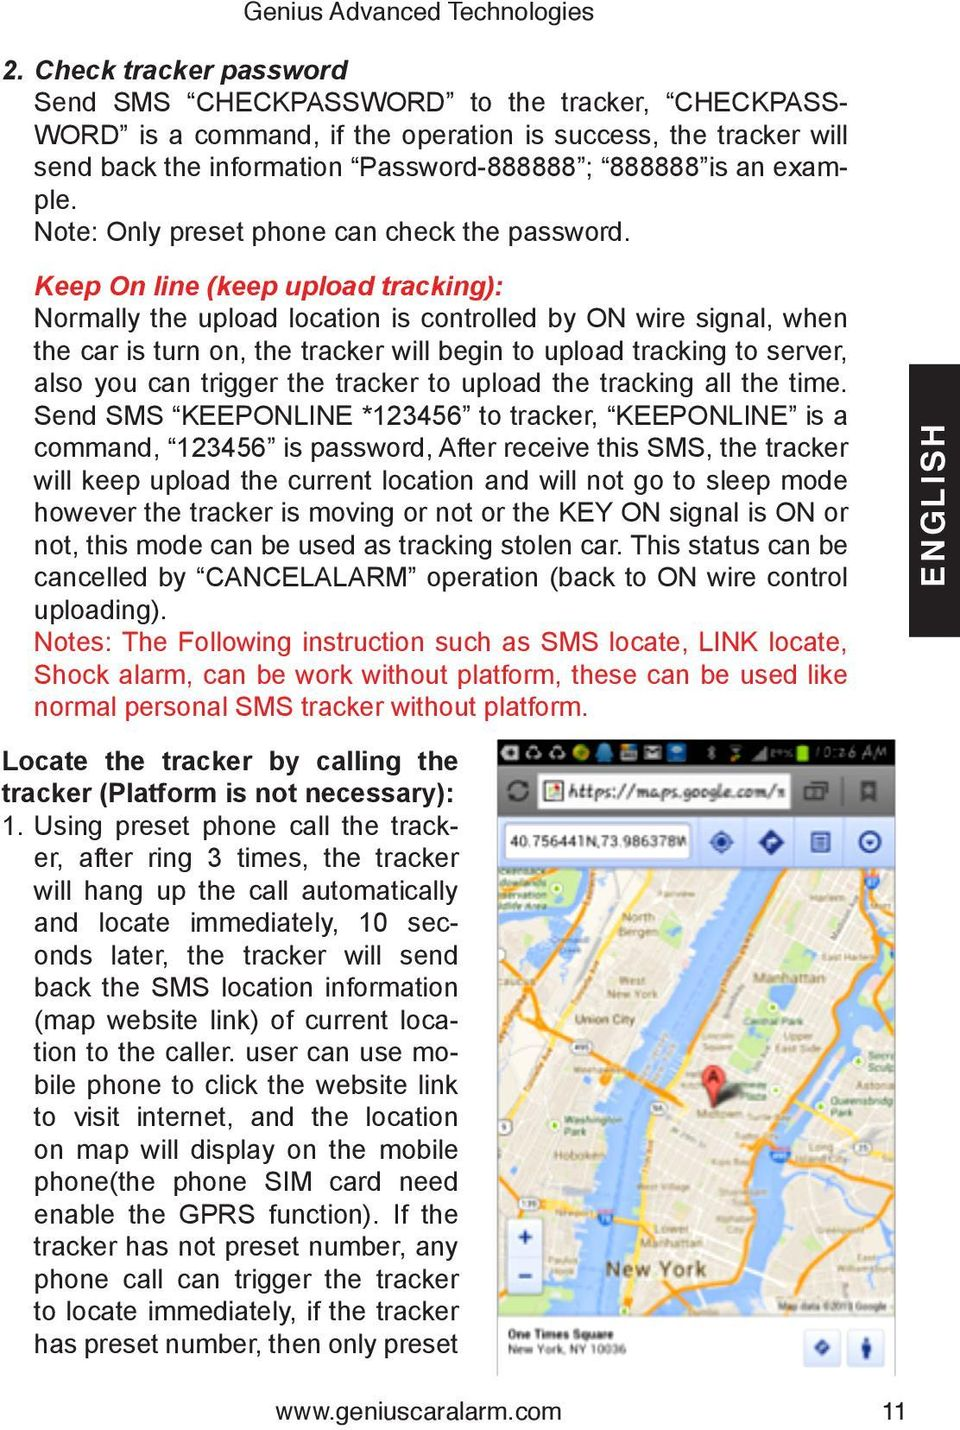 Keep On line (keep upload tracking): Normally the upload location is controlled by ON wire signal, when the car is turn on, the tracker will begin to upload tracking to server, also you can trigger